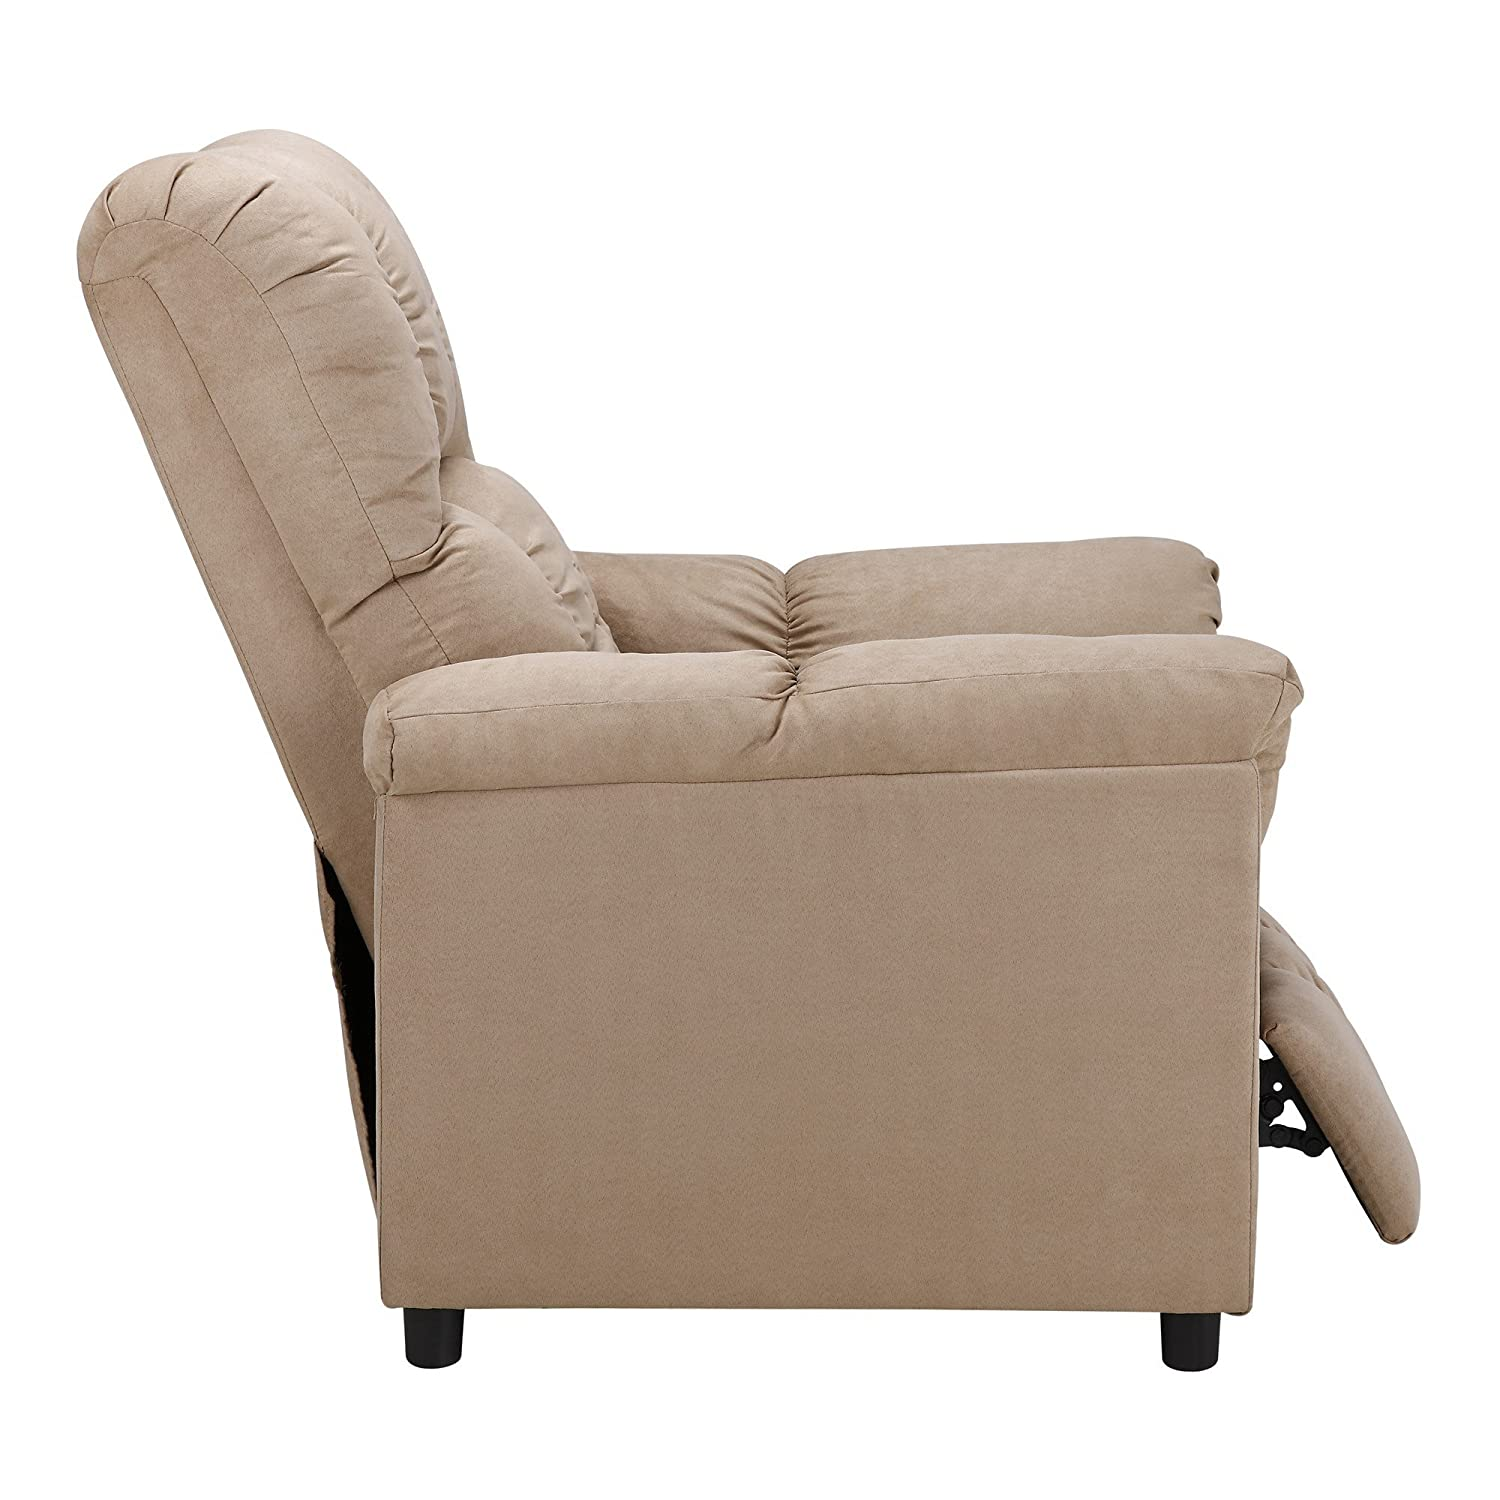 sc 1 st  Amazon.com & Amazon.com: Dorel Living Slim Recliner Beige: Kitchen u0026 Dining islam-shia.org